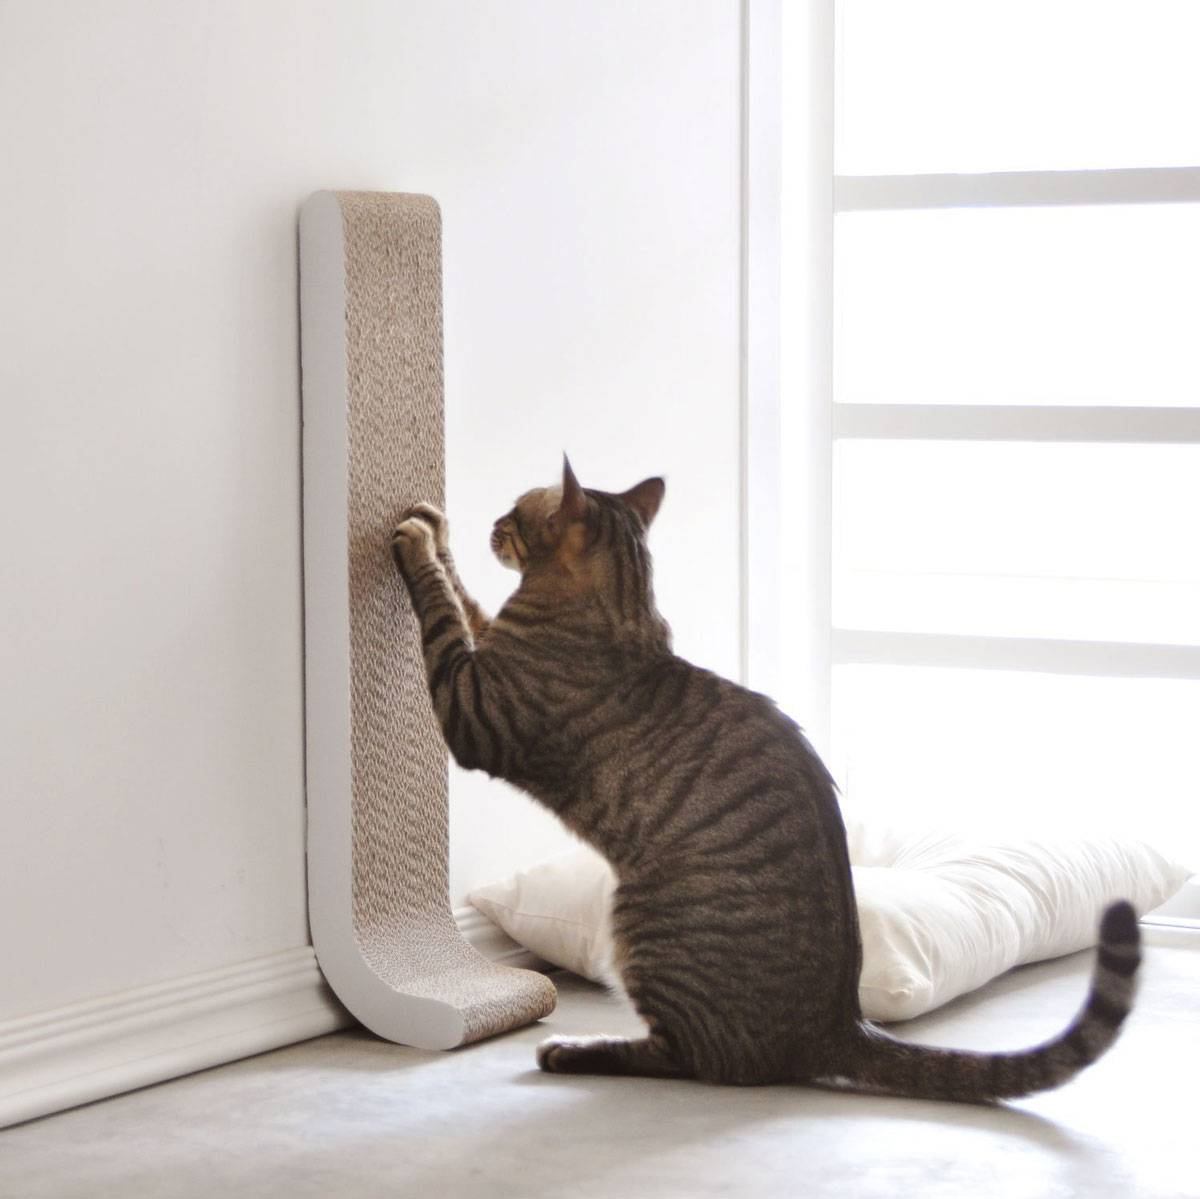 Amazing Other Great Scratching Options Are Wall Posts Or Sofa Corners (See Right).  Posts Donu0027t Have To Be Expensive. There Are Many DIY Articles, Like This  One On ... Awesome Ideas